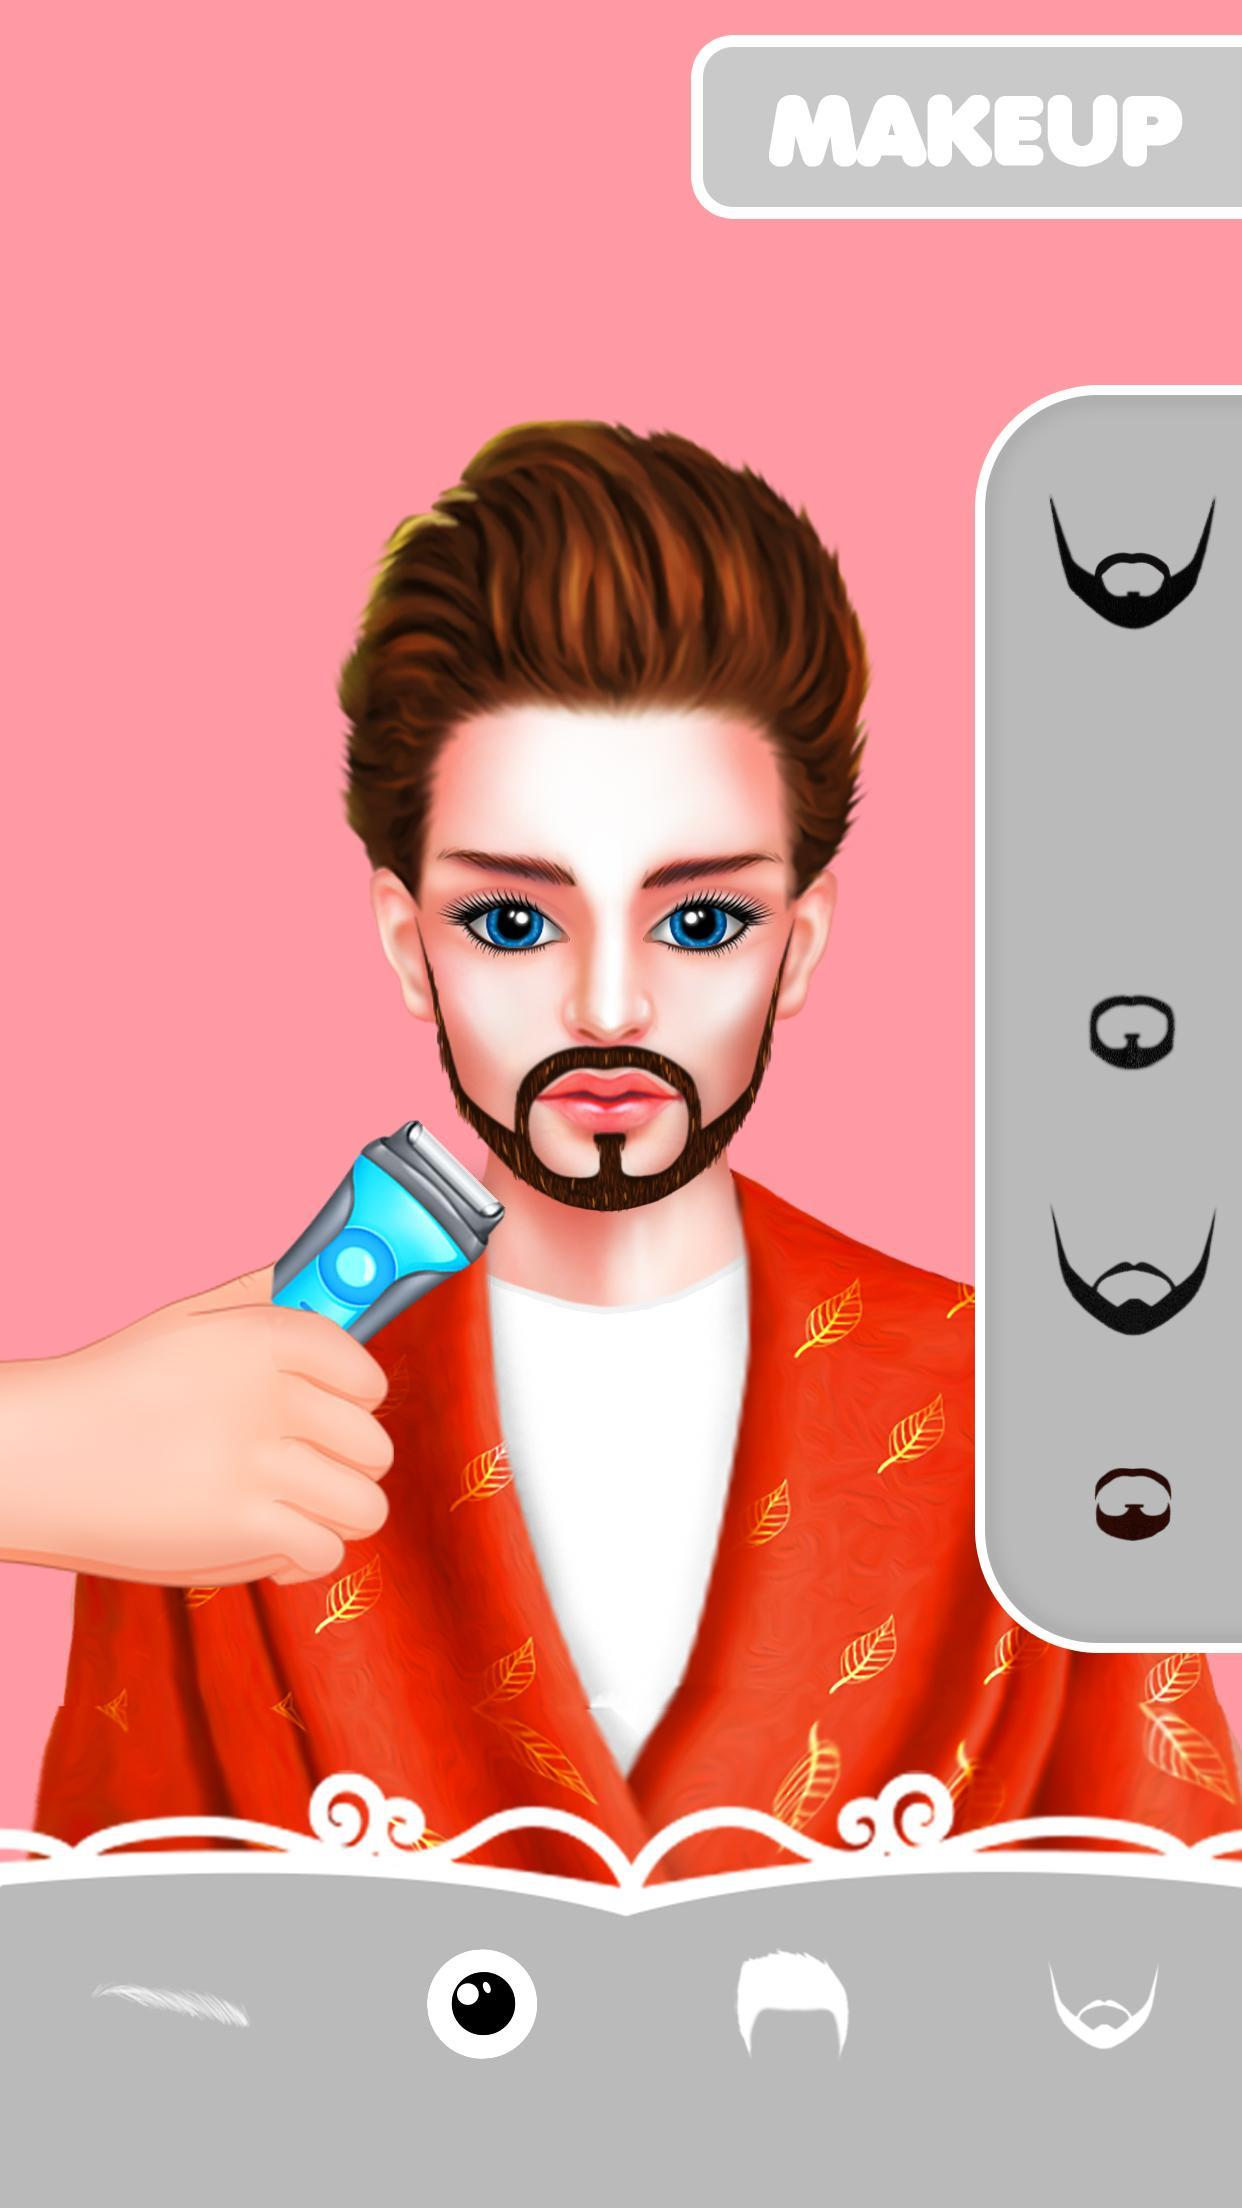 Celebrity fashion designer: Royal makeover Salon 1.8 Screenshot 4